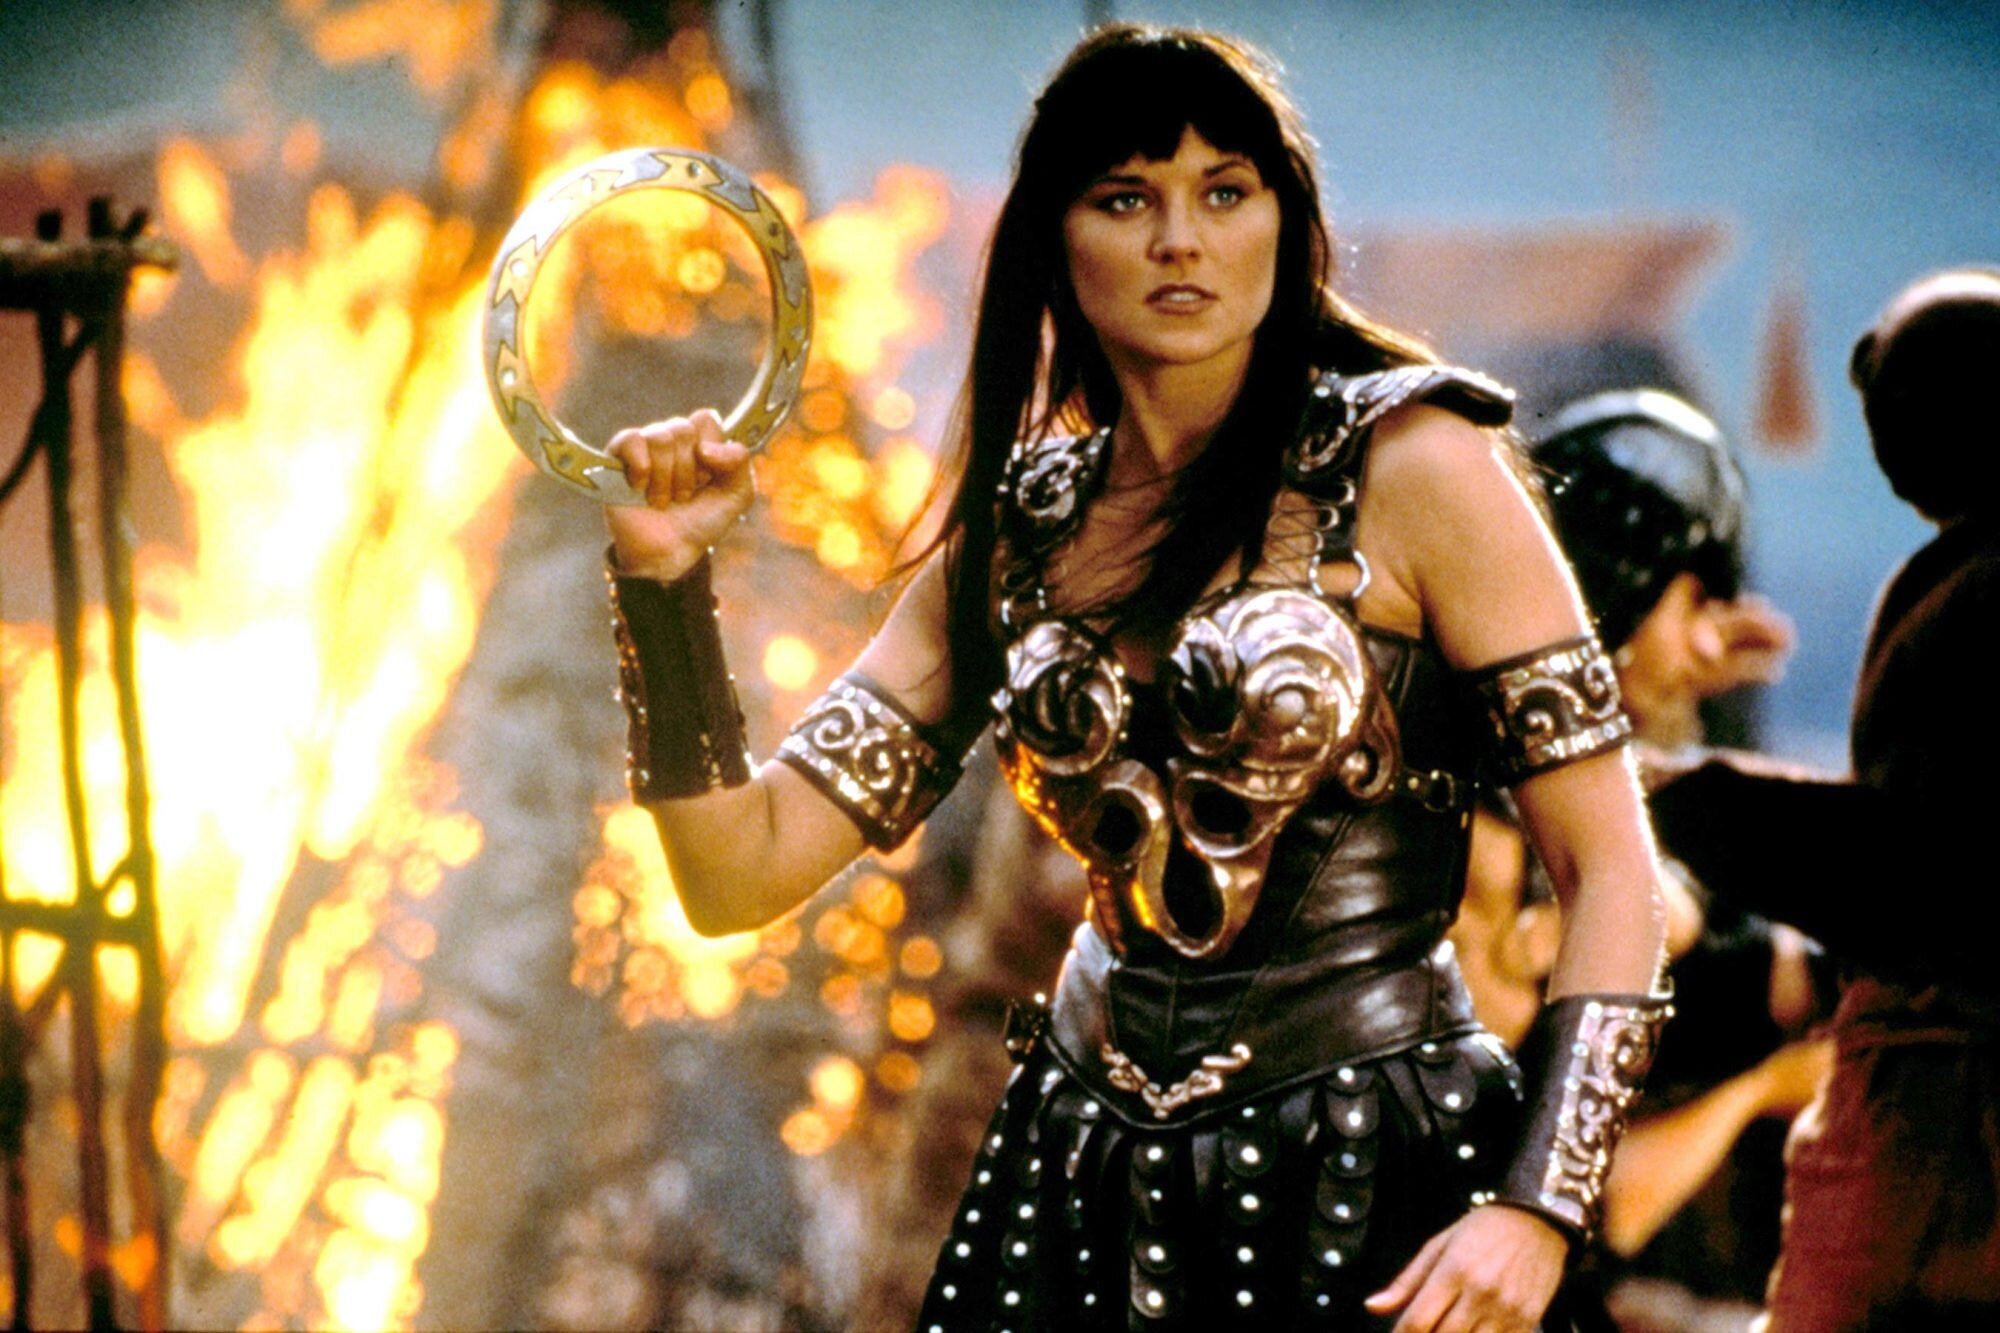 Lucy Lawless And Renee O'Connor With Granddaughters On Halloween 2020 Xena: Warrior Princess reboot scrapped at NBC | EW.com